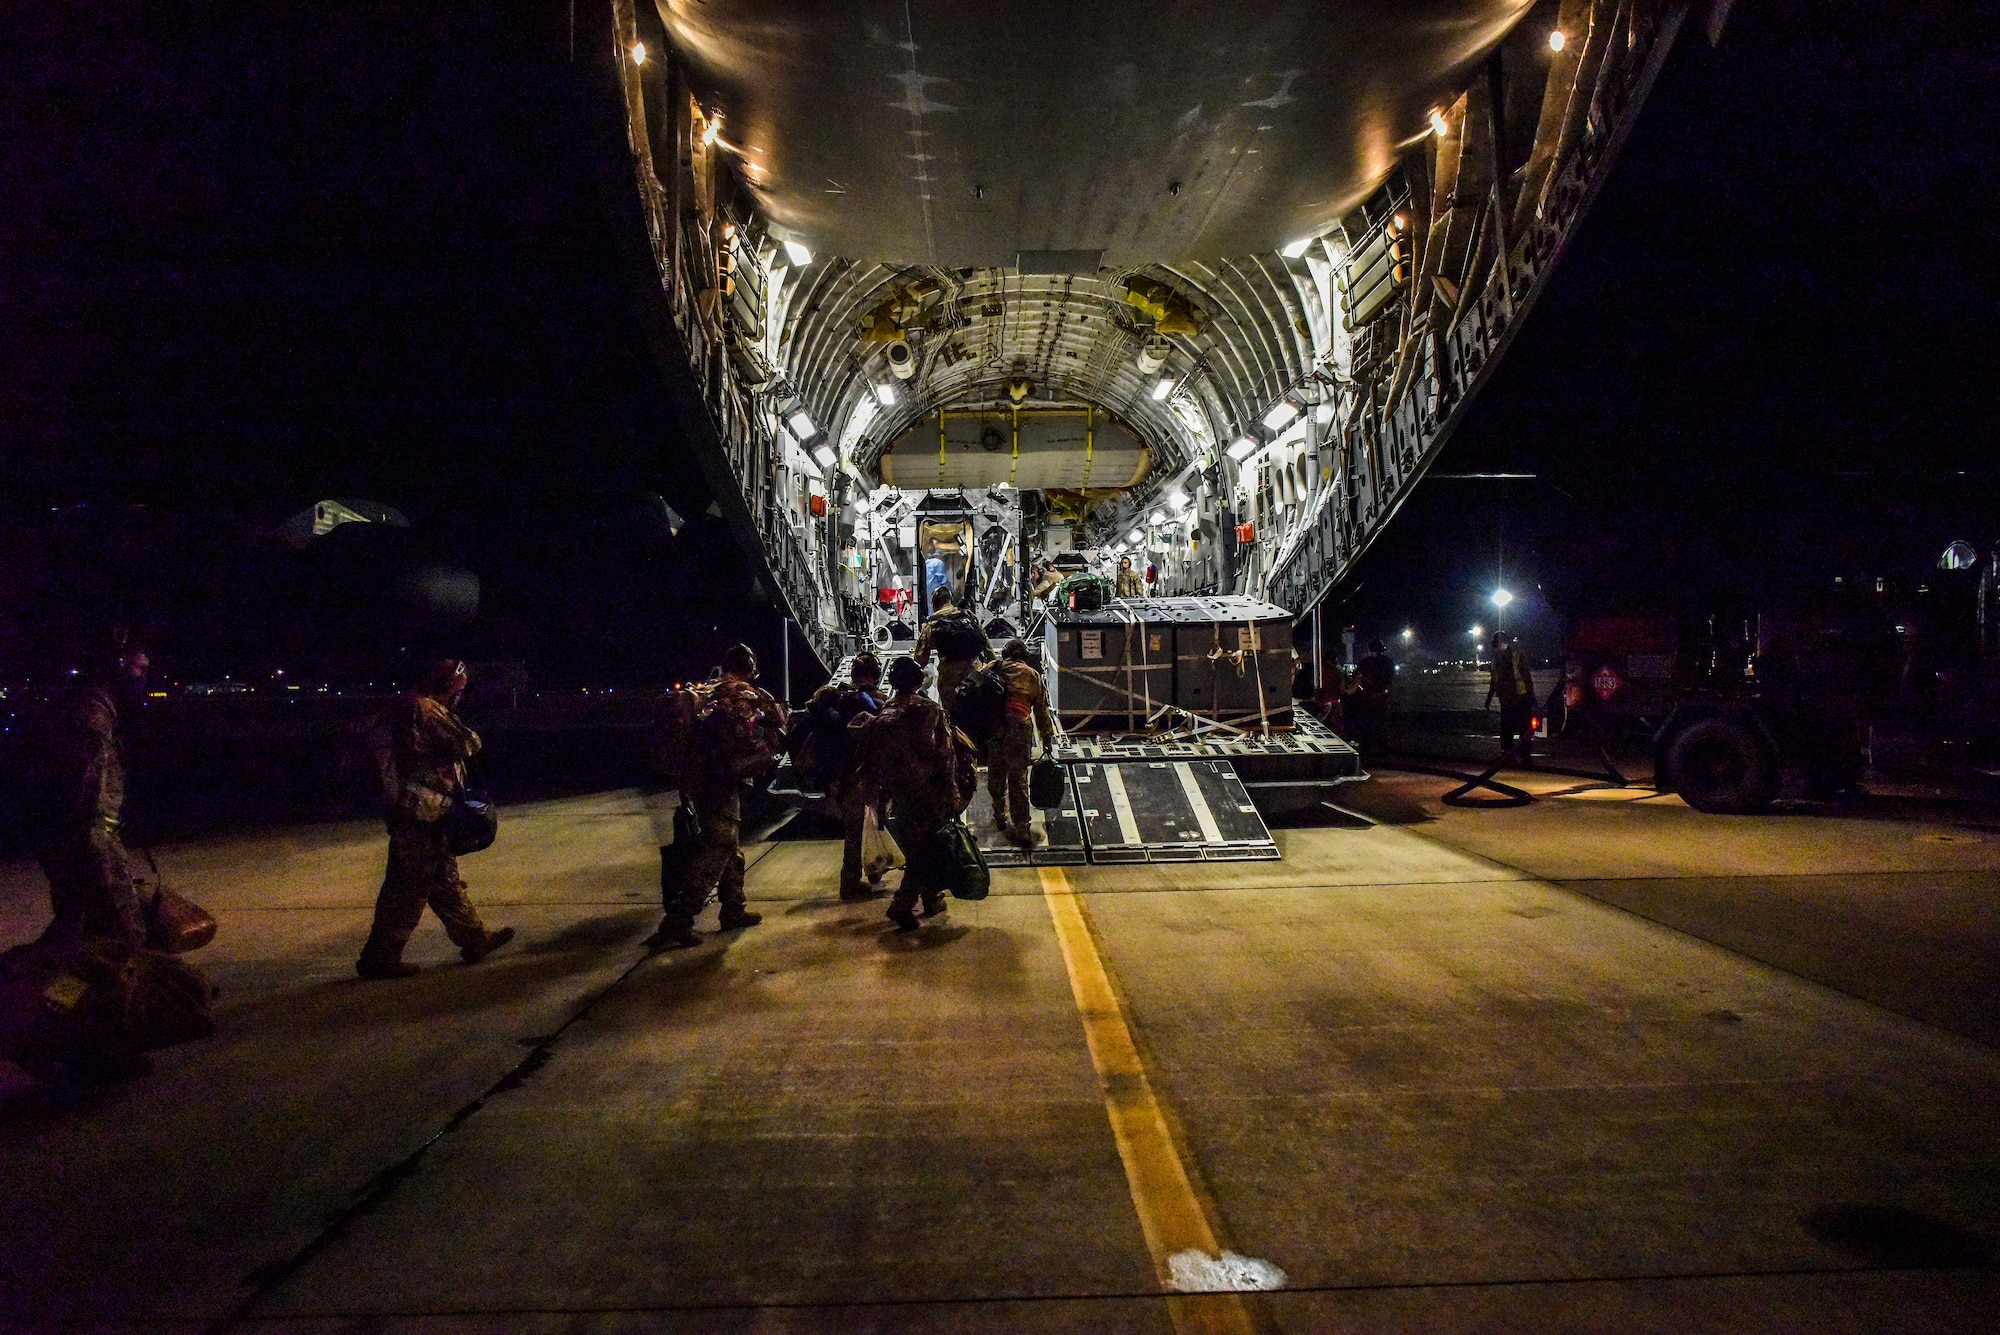 Airmen from the 60th Air Mobility Wing support a Transport Isolation System operation at Joint Base Pearl-Harbor Hickam, Hawaii, July 17, 2020. Several U.S. Air Force units came together to rapidly deploy the bio-containment capability for the first time in the Indo-Pacific theater in support of a COVID-19 aeromedical evacuation mission. The TIS is an infectious disease containment unit designed to minimize contamination risk to aircrew and medical attendants, while allowing in-flight medical care for patients afflicted by a disease. (U.S. Air Force photo by Tech. Sgt. Anthony Nelson Jr.)